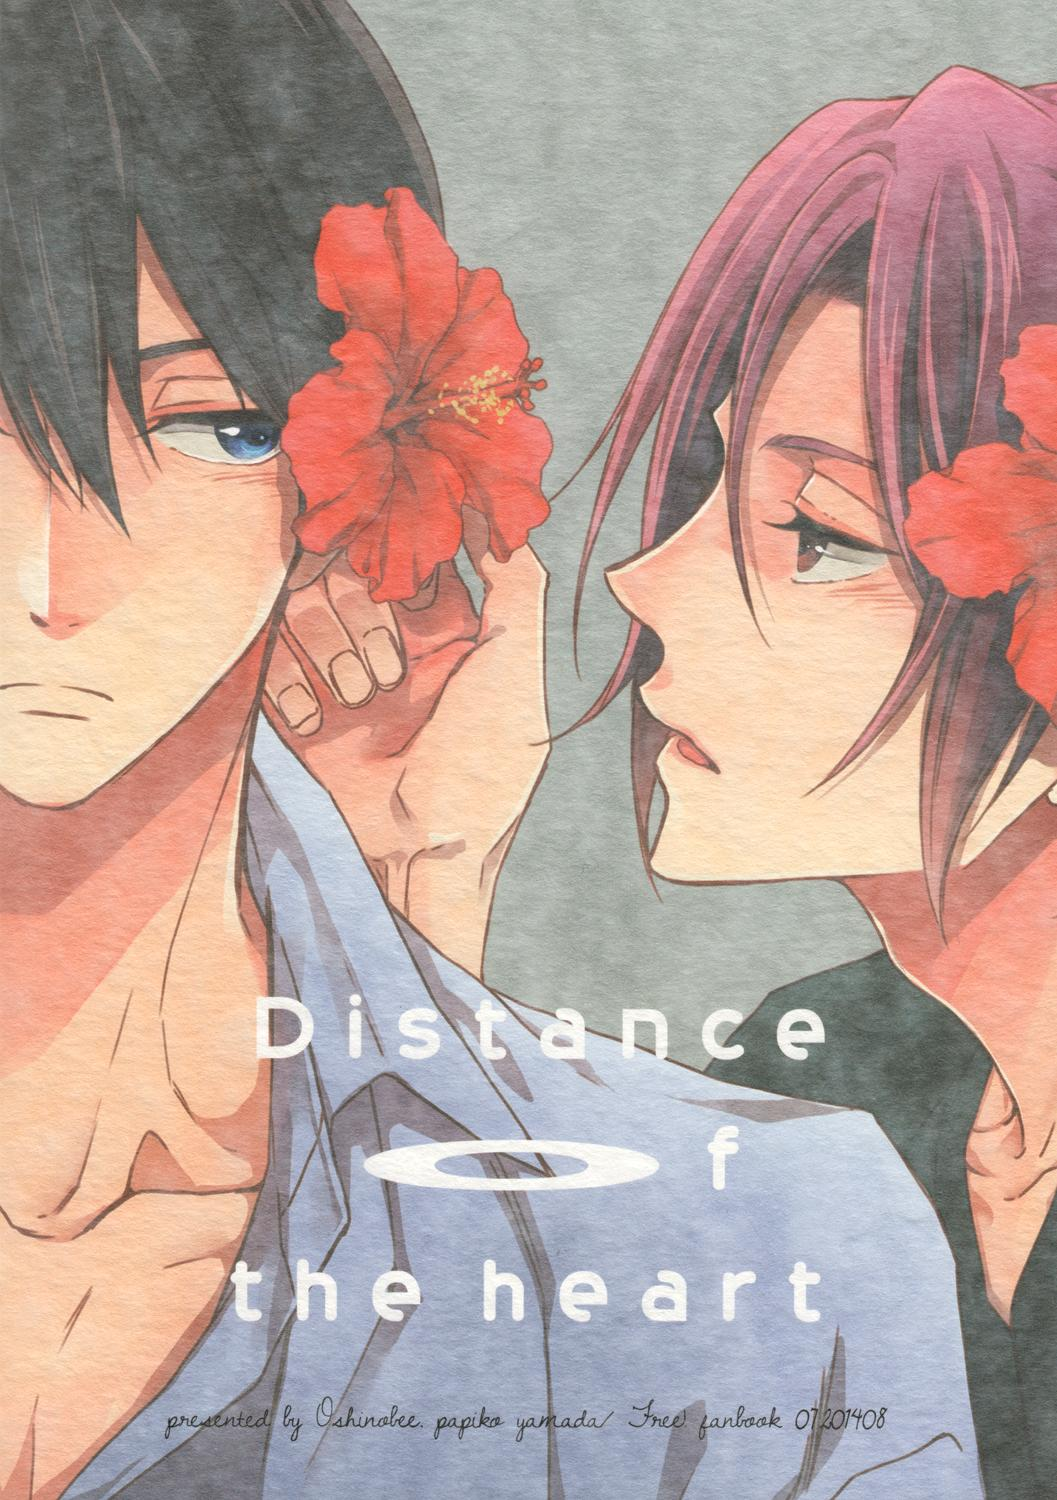 Distance of the heart 29